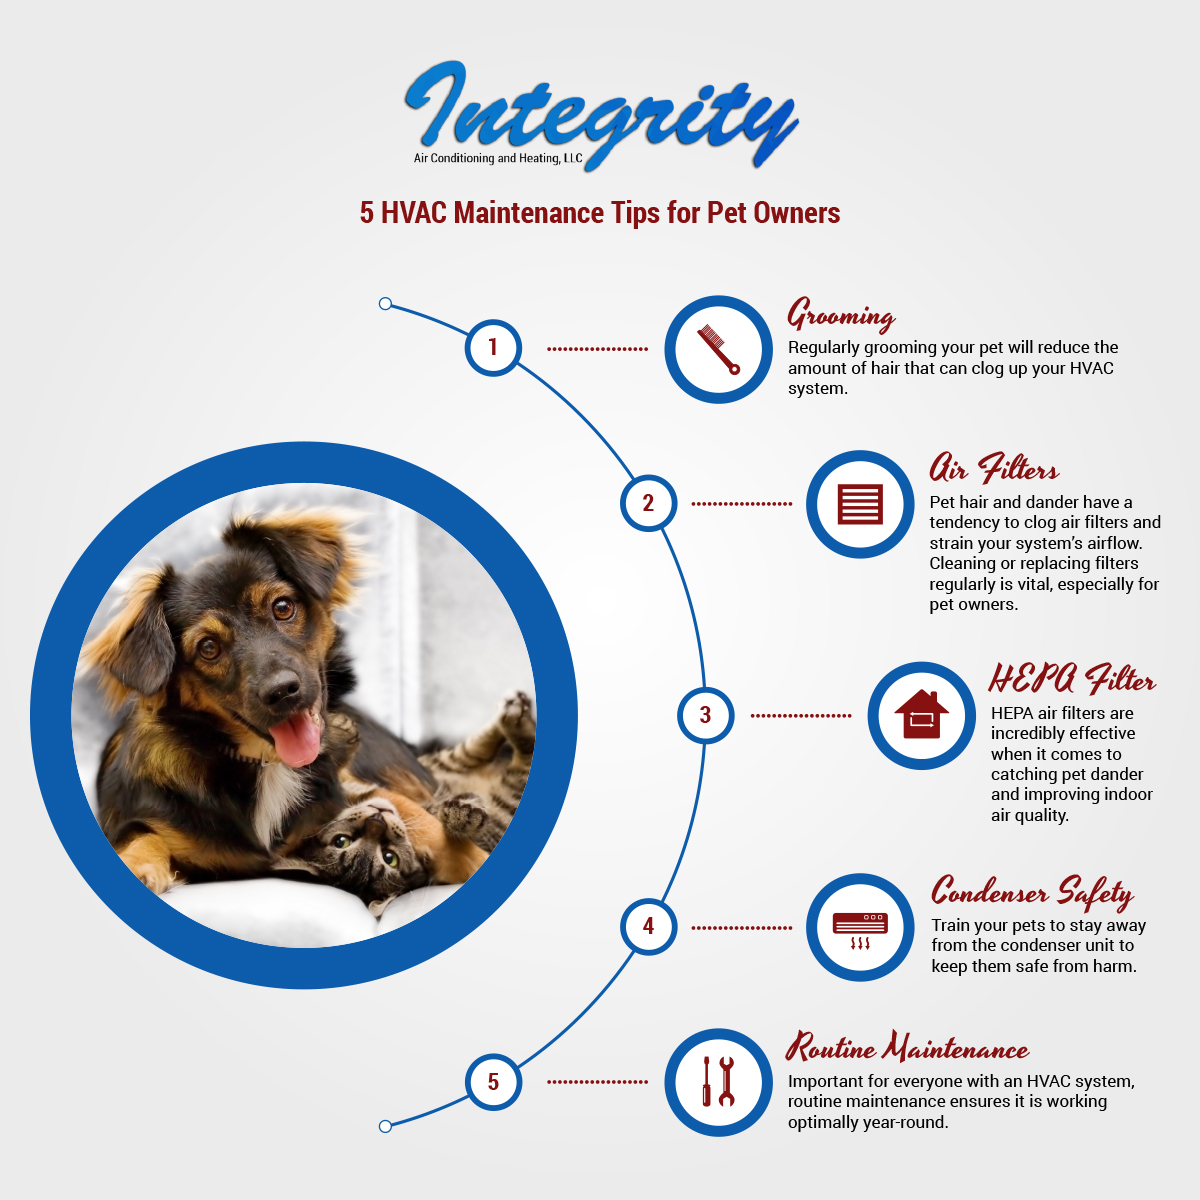 5 HVAC Maintenance Tips for Pet Owners Infographic